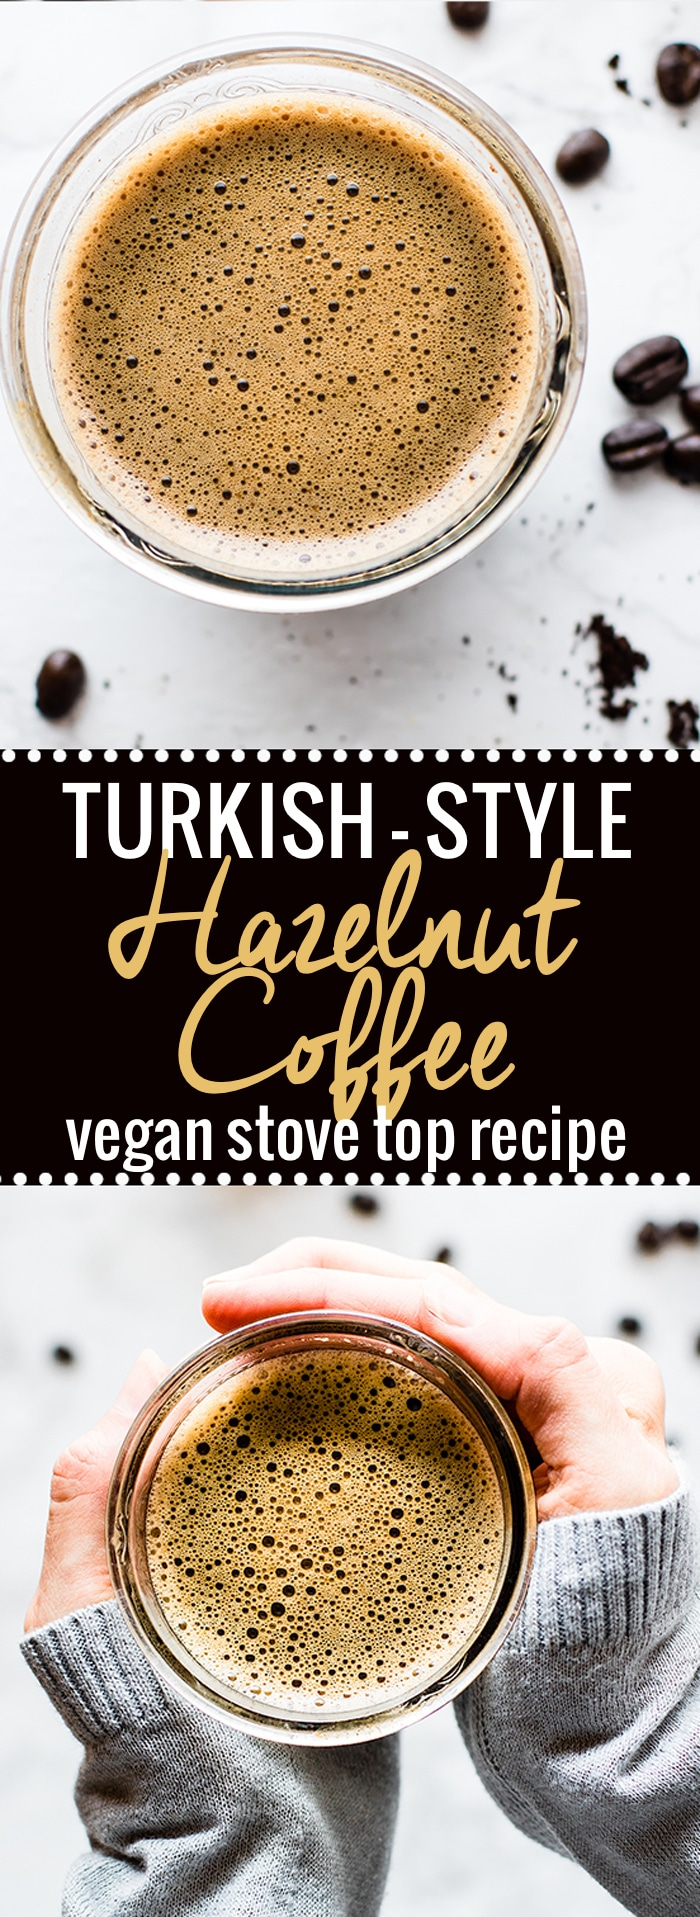 A vegan hazelnut coffee recipe with a cultural twist! This Turkish Style vegan Hazelnut coffee is one smooth yet robust homemade cup of coffee! It's easy to make on the stove top, made with simple ingredients, and dairy free. A creamy vegan coffee drink to sip and savor! #dairyfree @so_delicious #cartwheelforcreamer @target